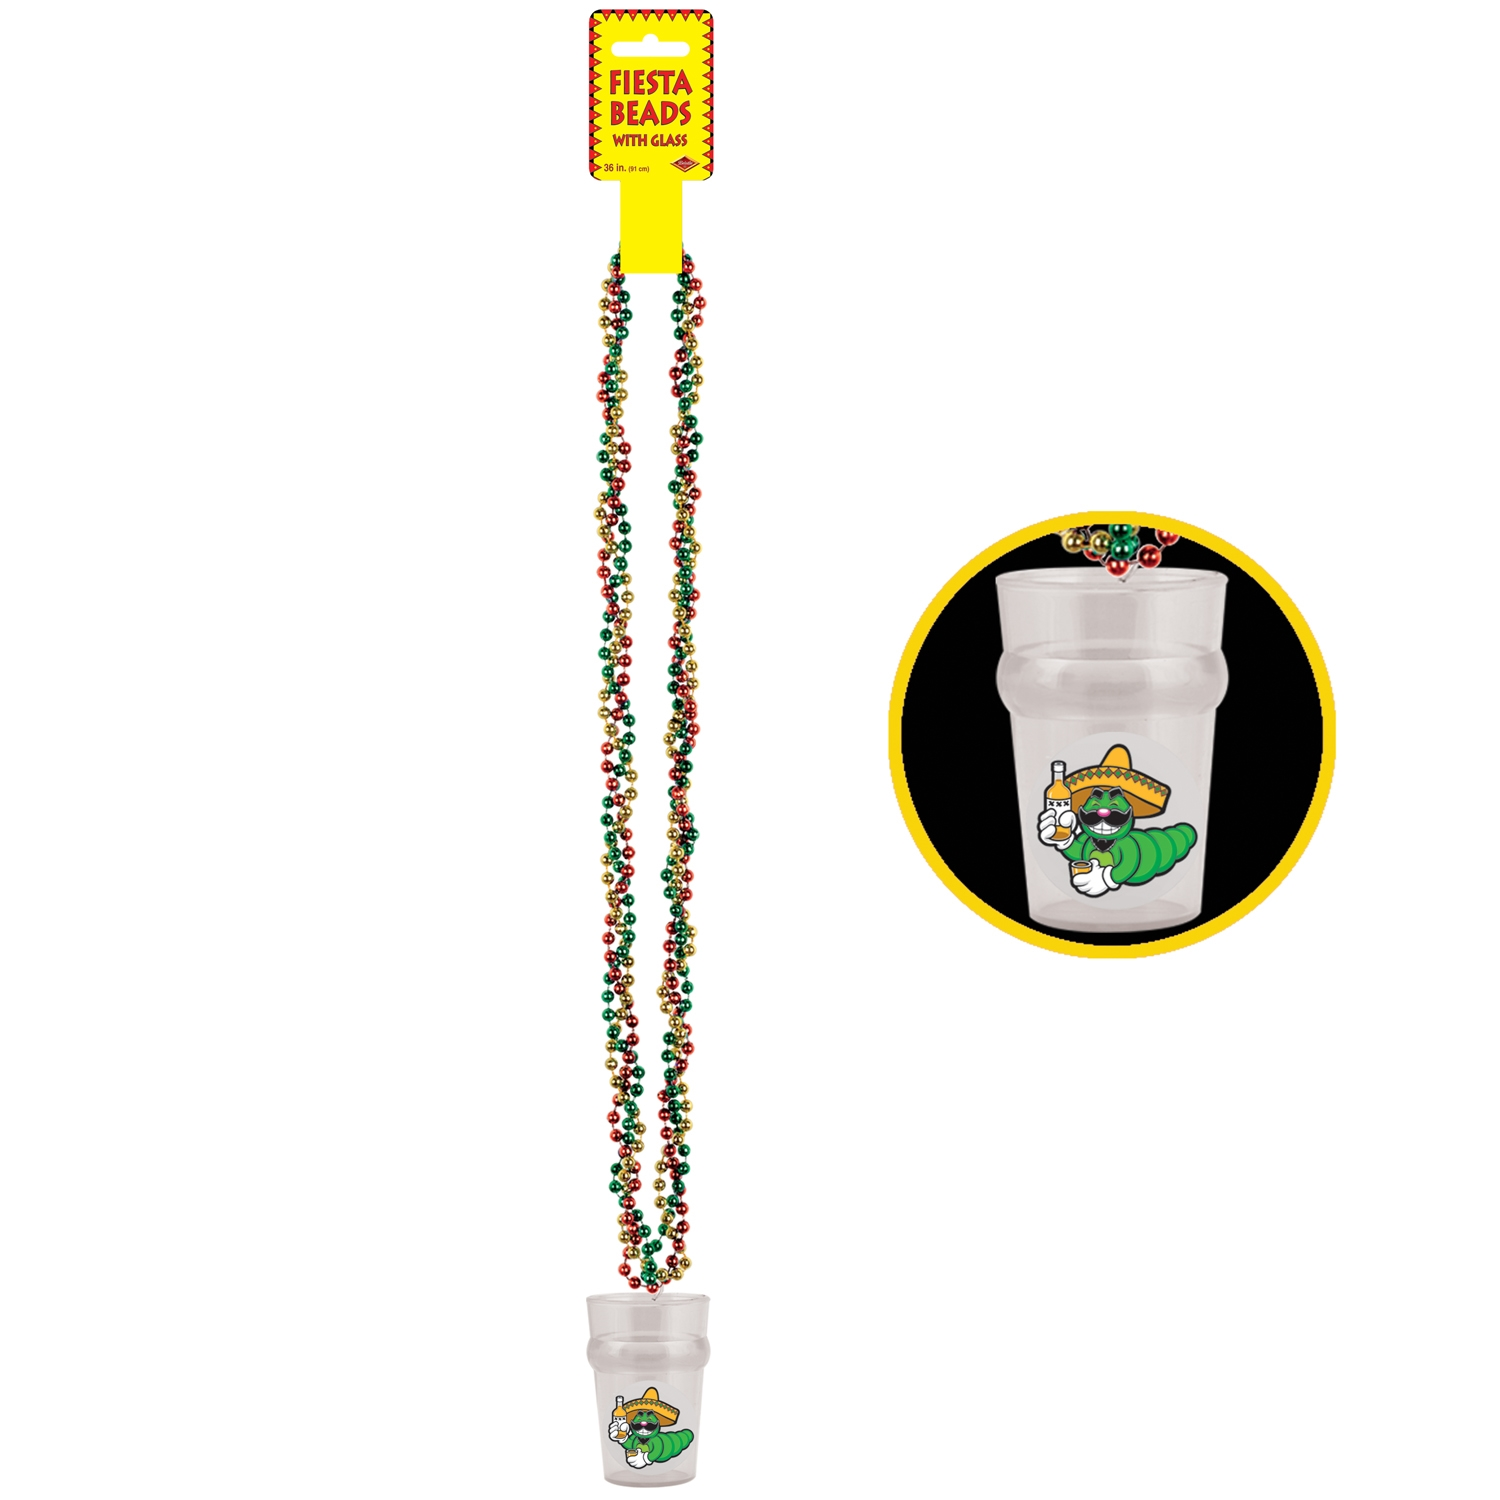 Braided Beads w/Fiesta Glass (Pack of 12) shot glass, braided, beads, neckace, tequila, worm, sinco de mayo, fiesta